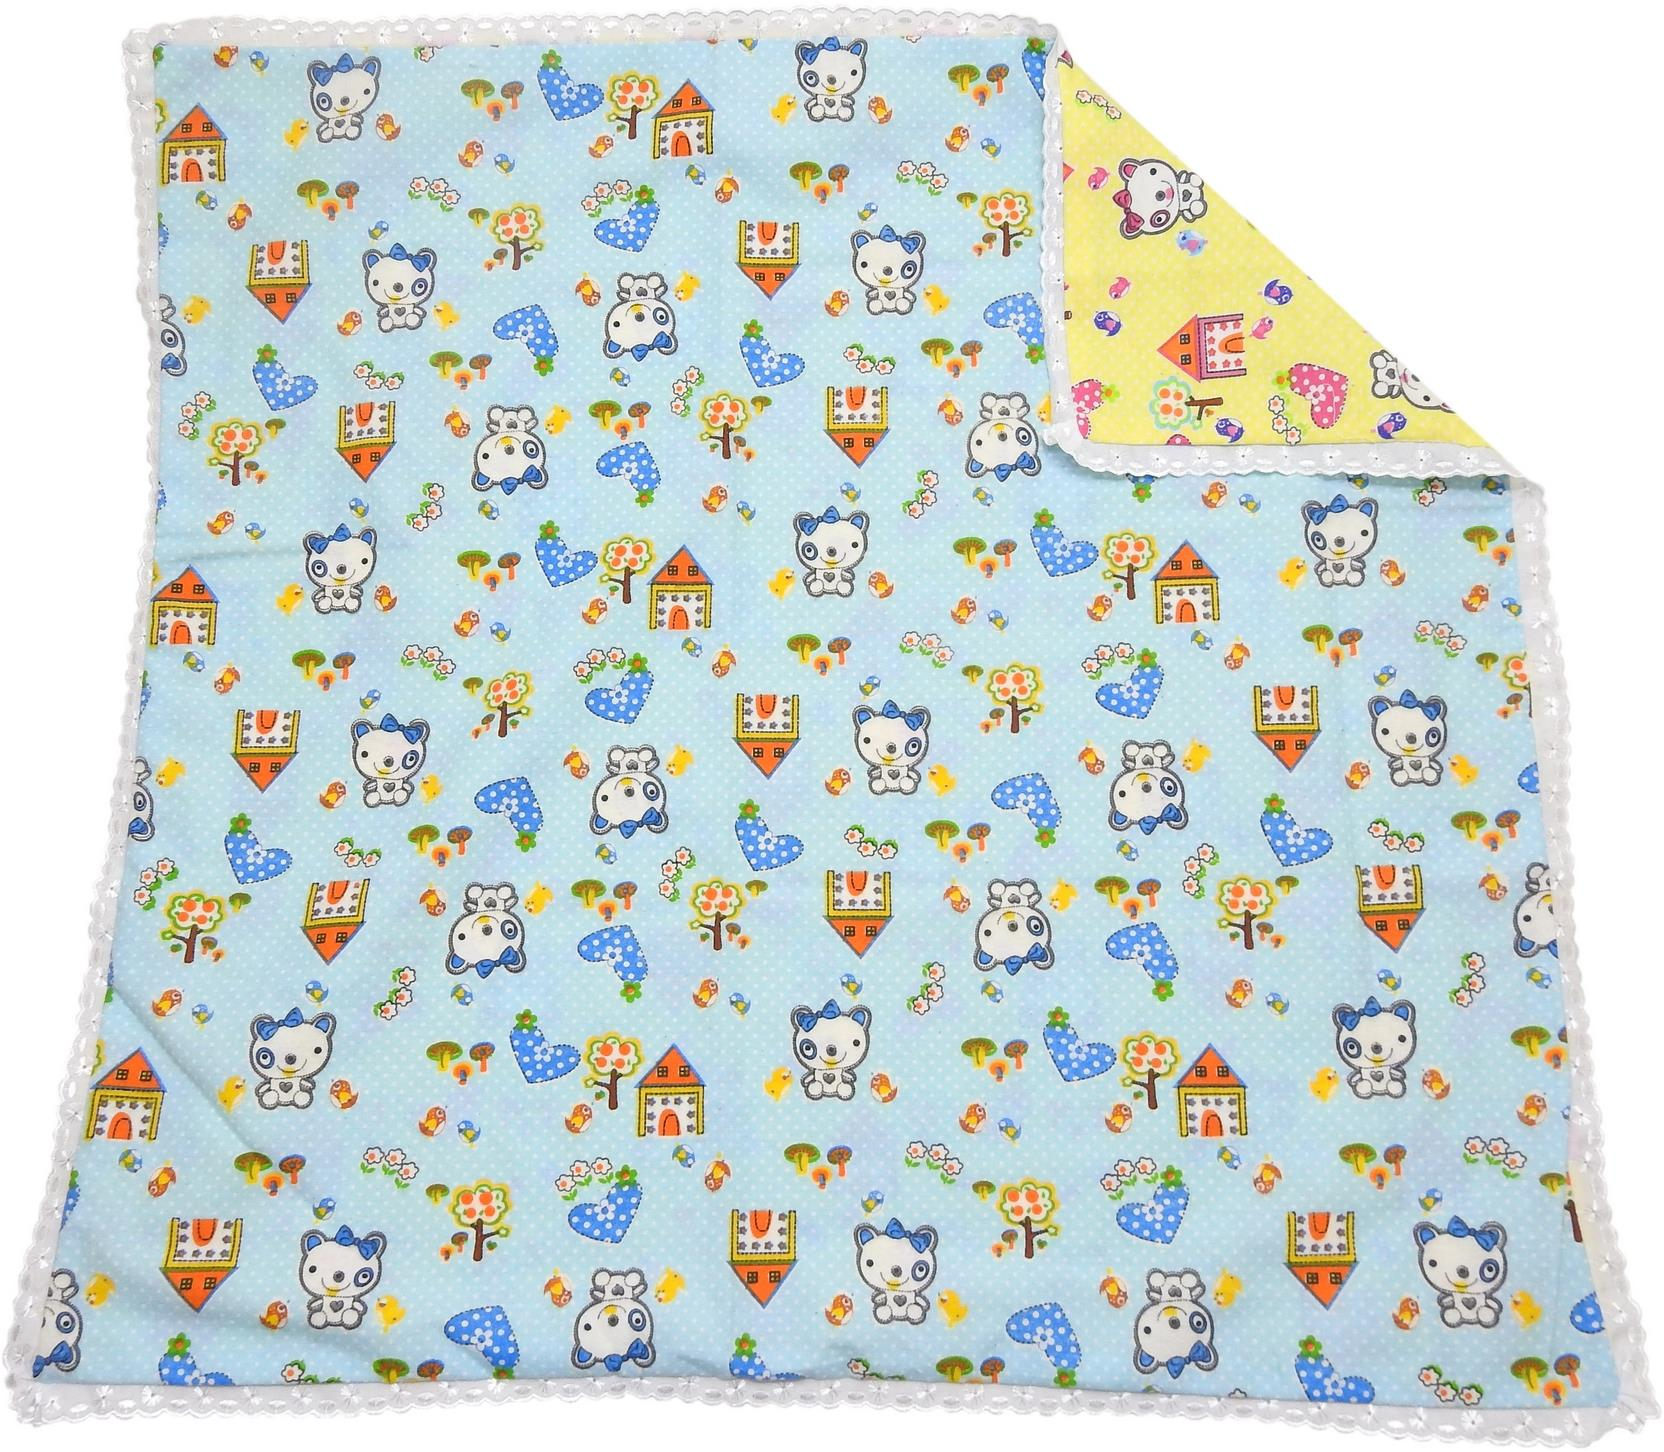 1 Wholesale patterned blanket for baby